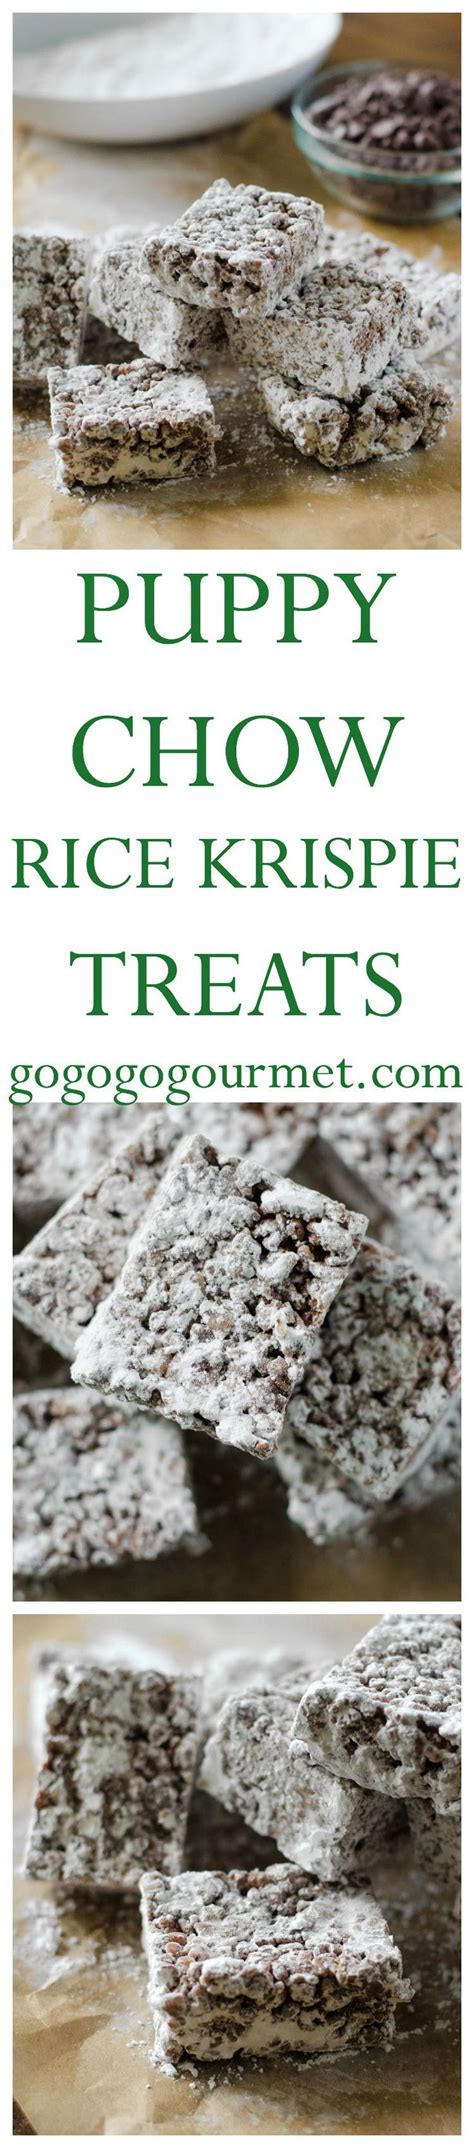 puppy chow cookies 17 best ideas about rice krispies treats on